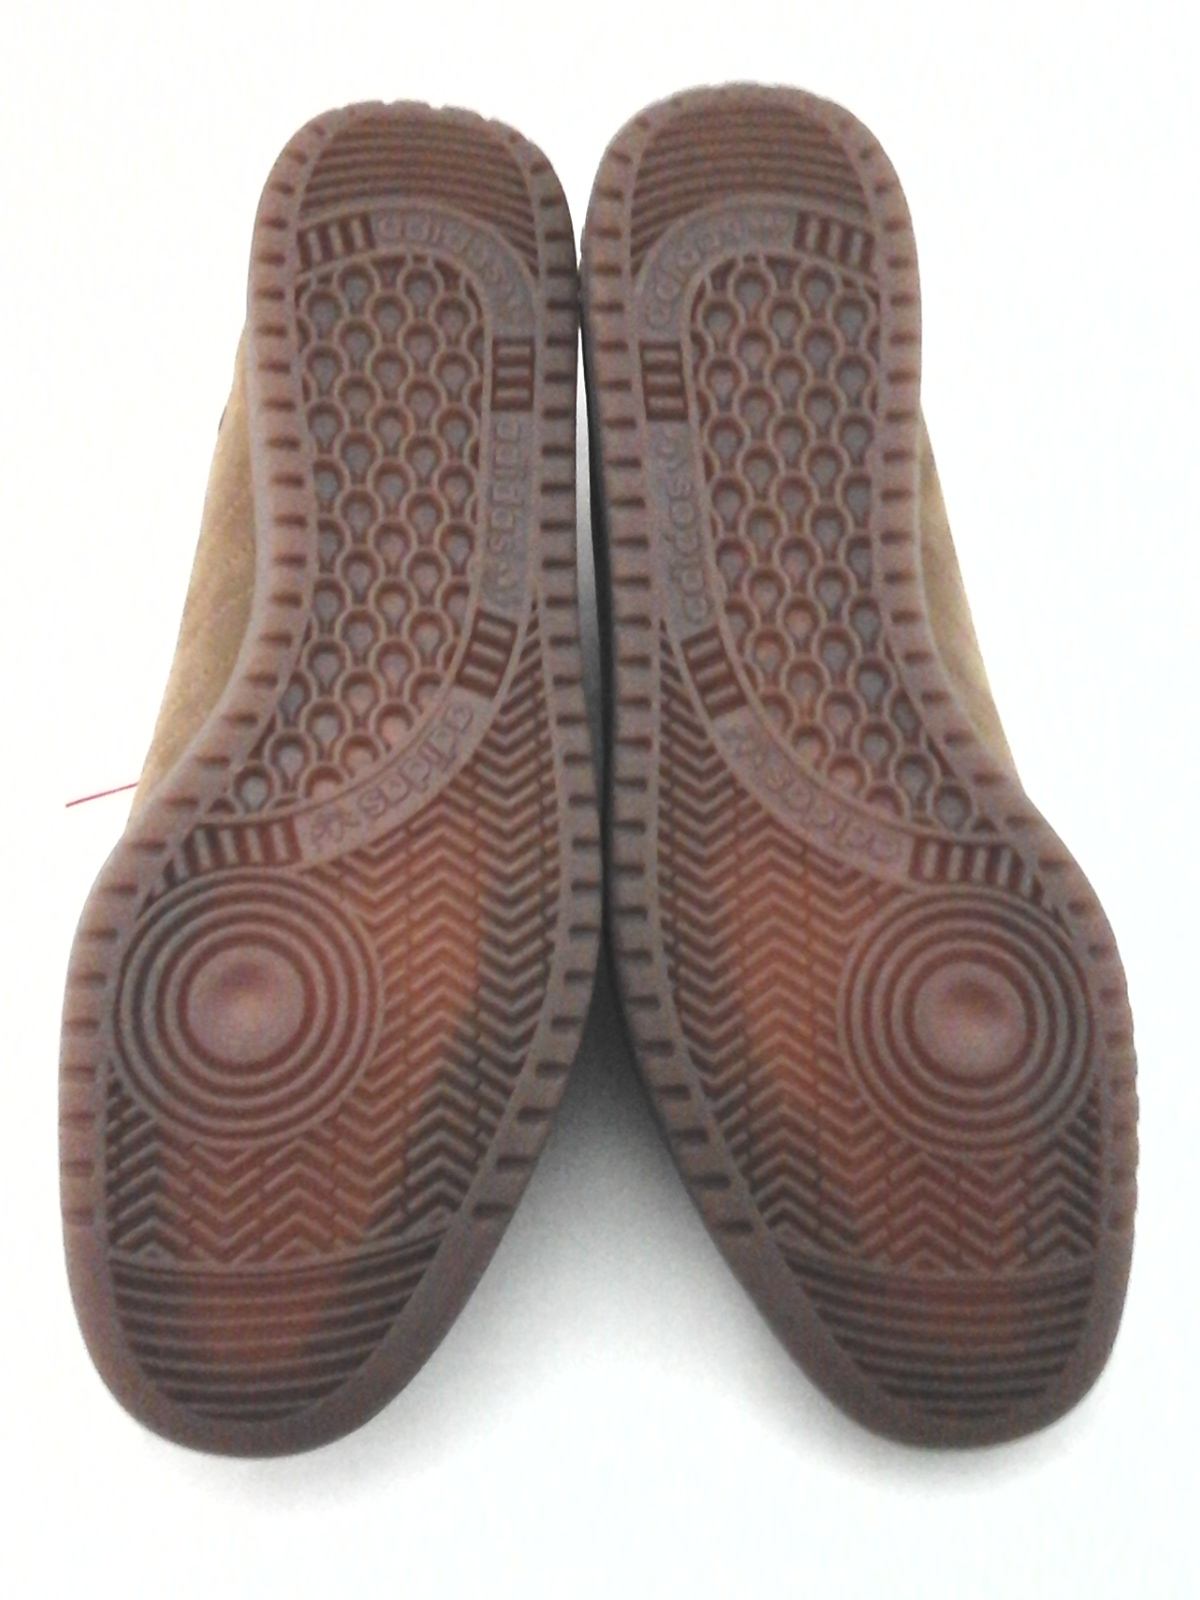 b4e259a4eb9a44 Adidas SPEZIAL Super Tobacco Brown Suede Sneakers Shoes CG2926 Mens US  13 48 New